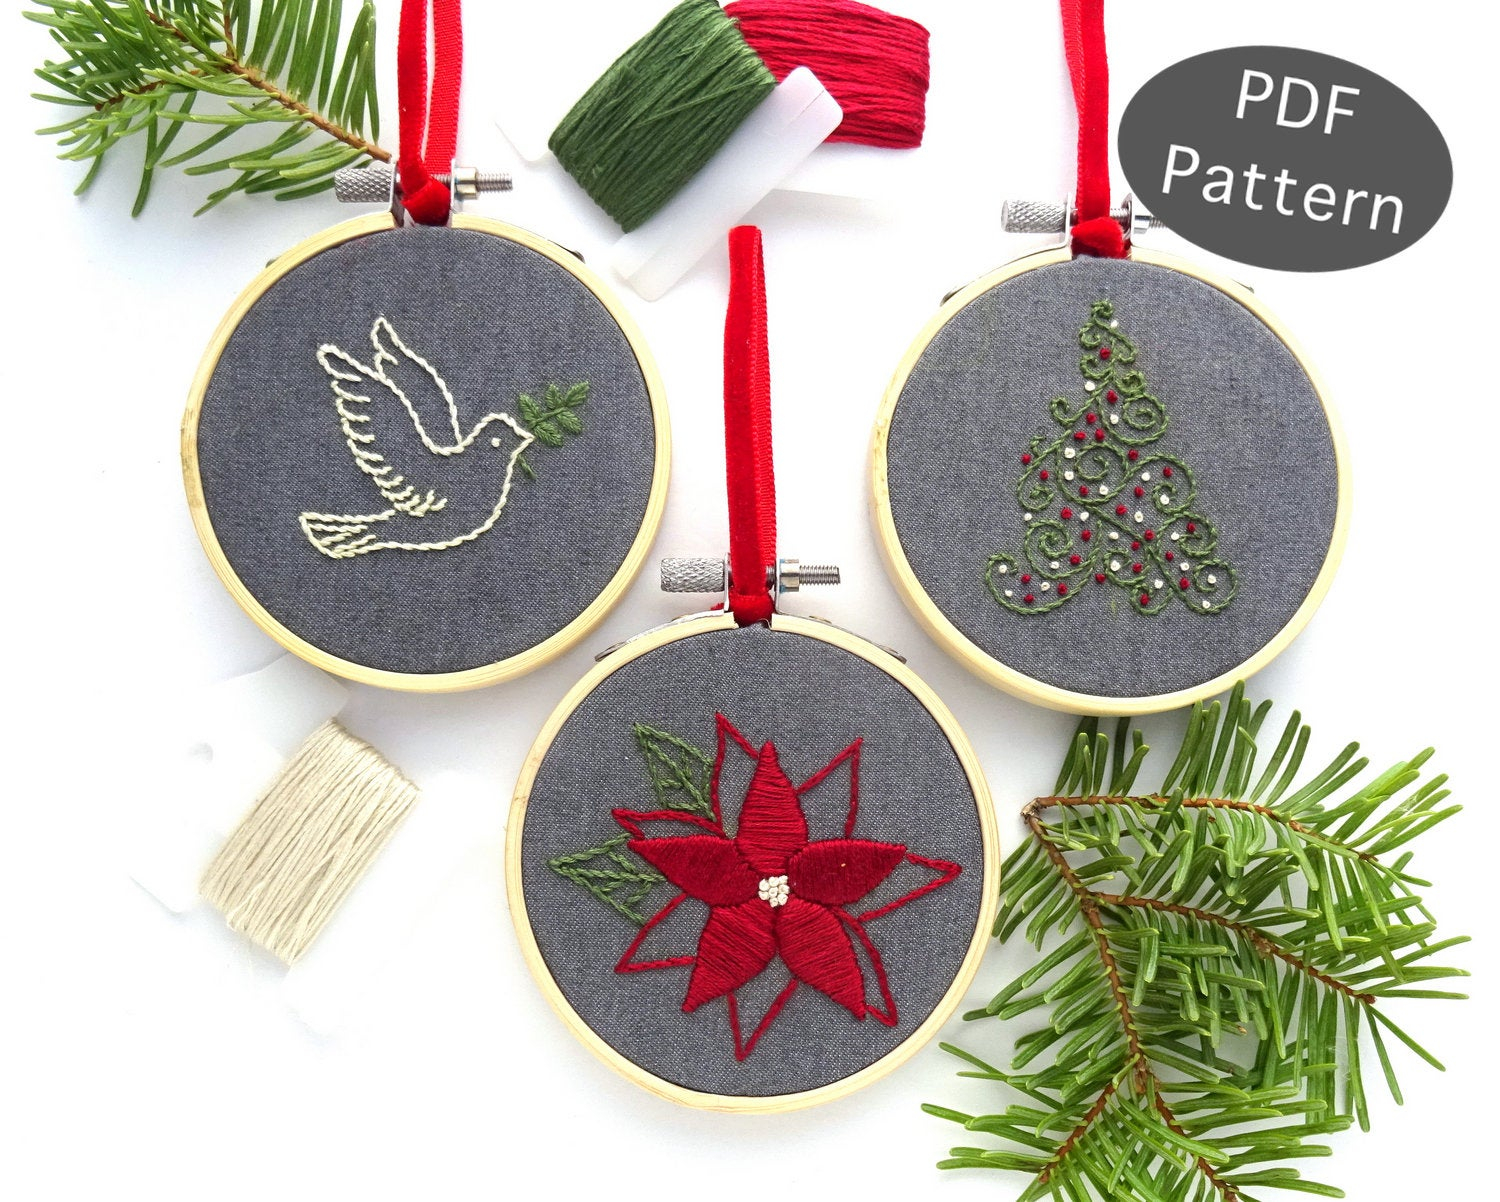 Christmas Hand Embroidery Patterns Christmas Ornament Set Hand Embroidery Pattern Diy Holiday Ornament Christmas Gift Idea Beginner Embroidery Pdf Peace Dove Ornament